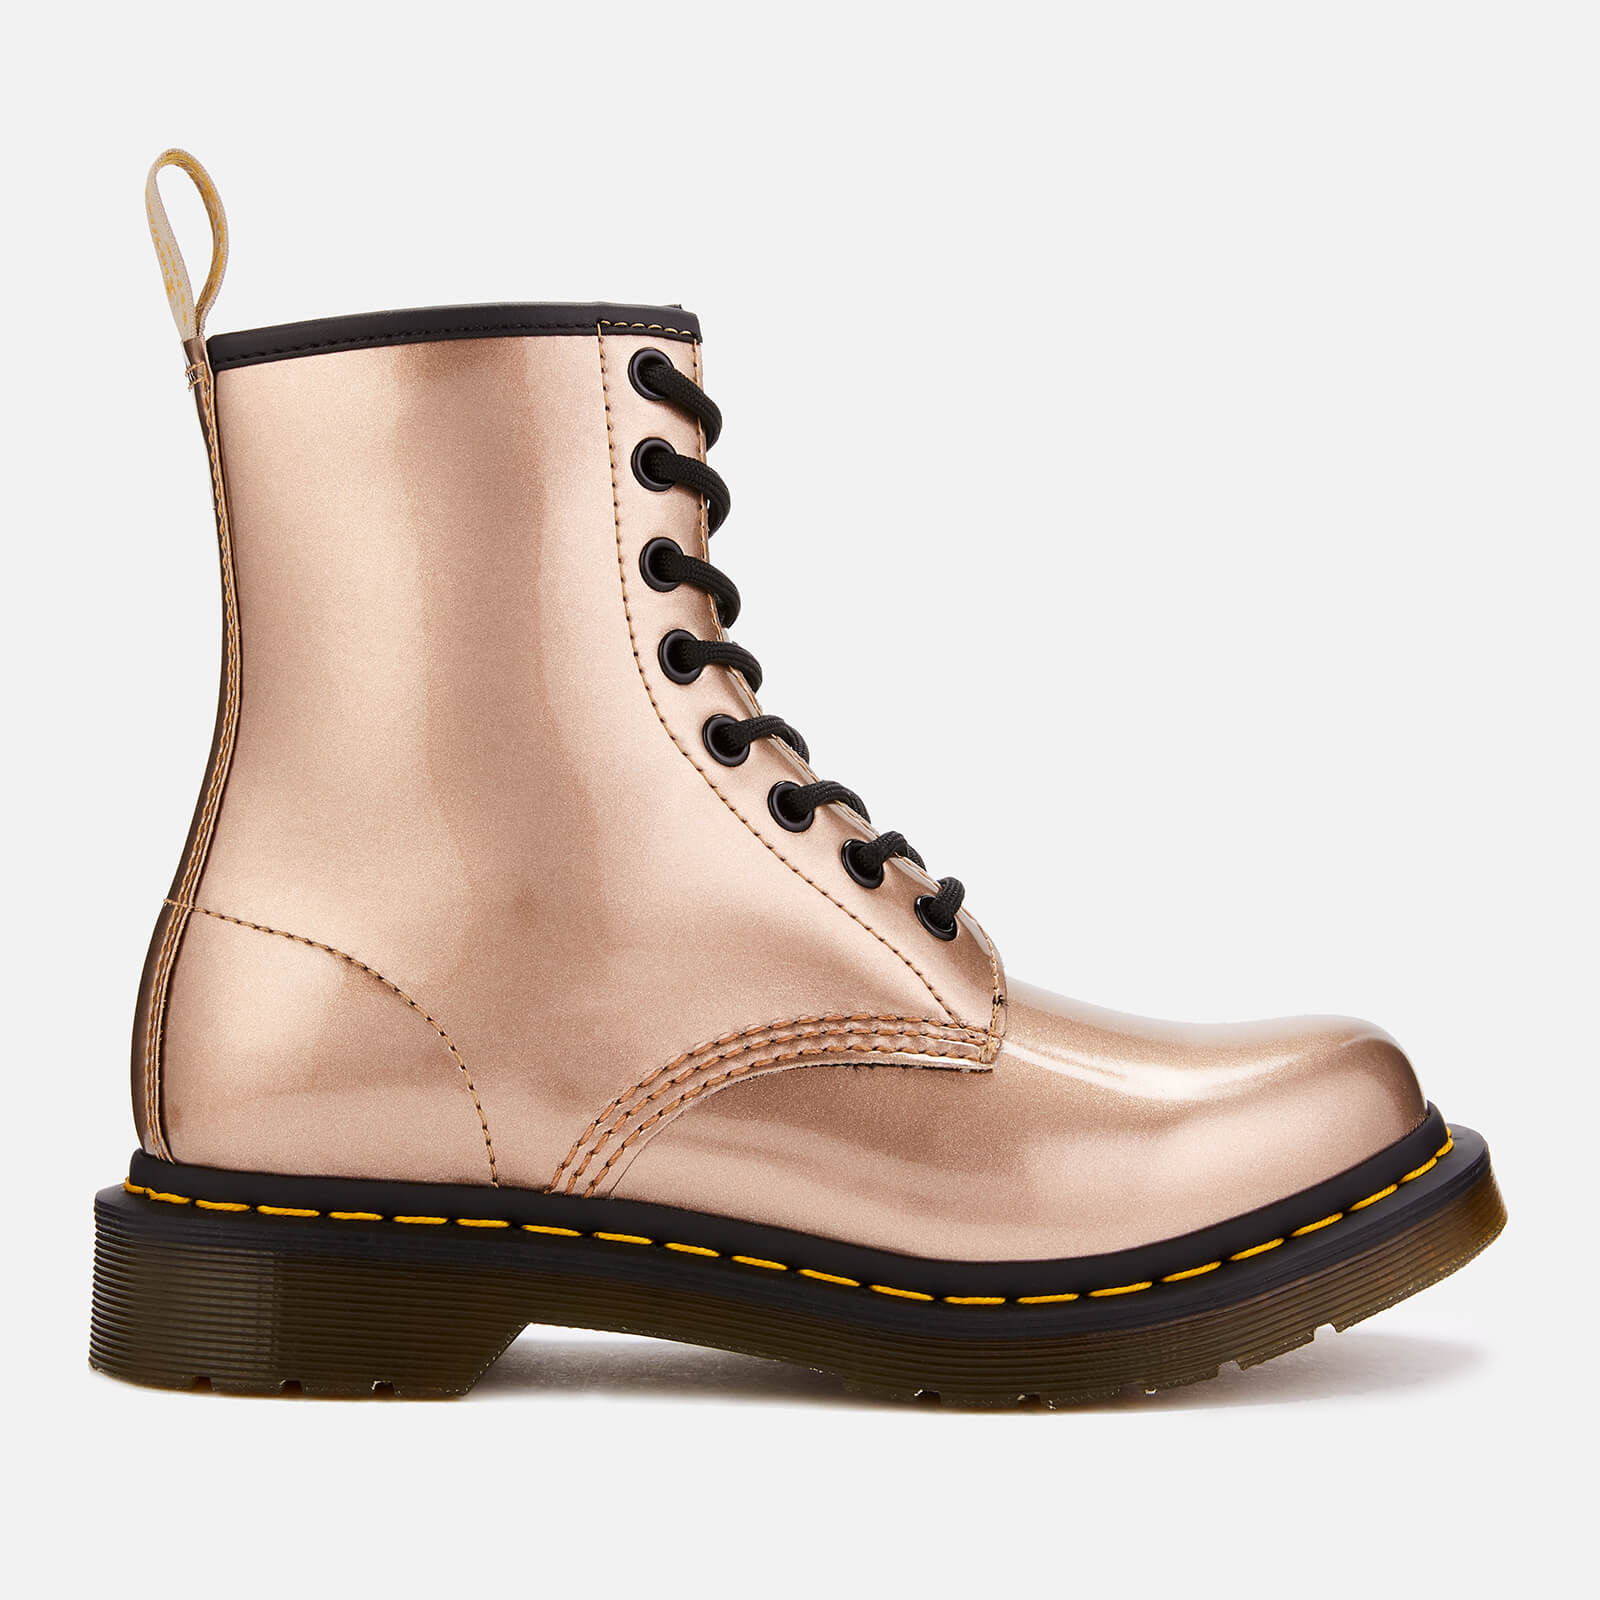 ccdaab2c2a1 Dr. Martens Women's 1460 Vegan Chrome 8-Eye Boots - Rose Gold | FREE UK  Delivery | Allsole